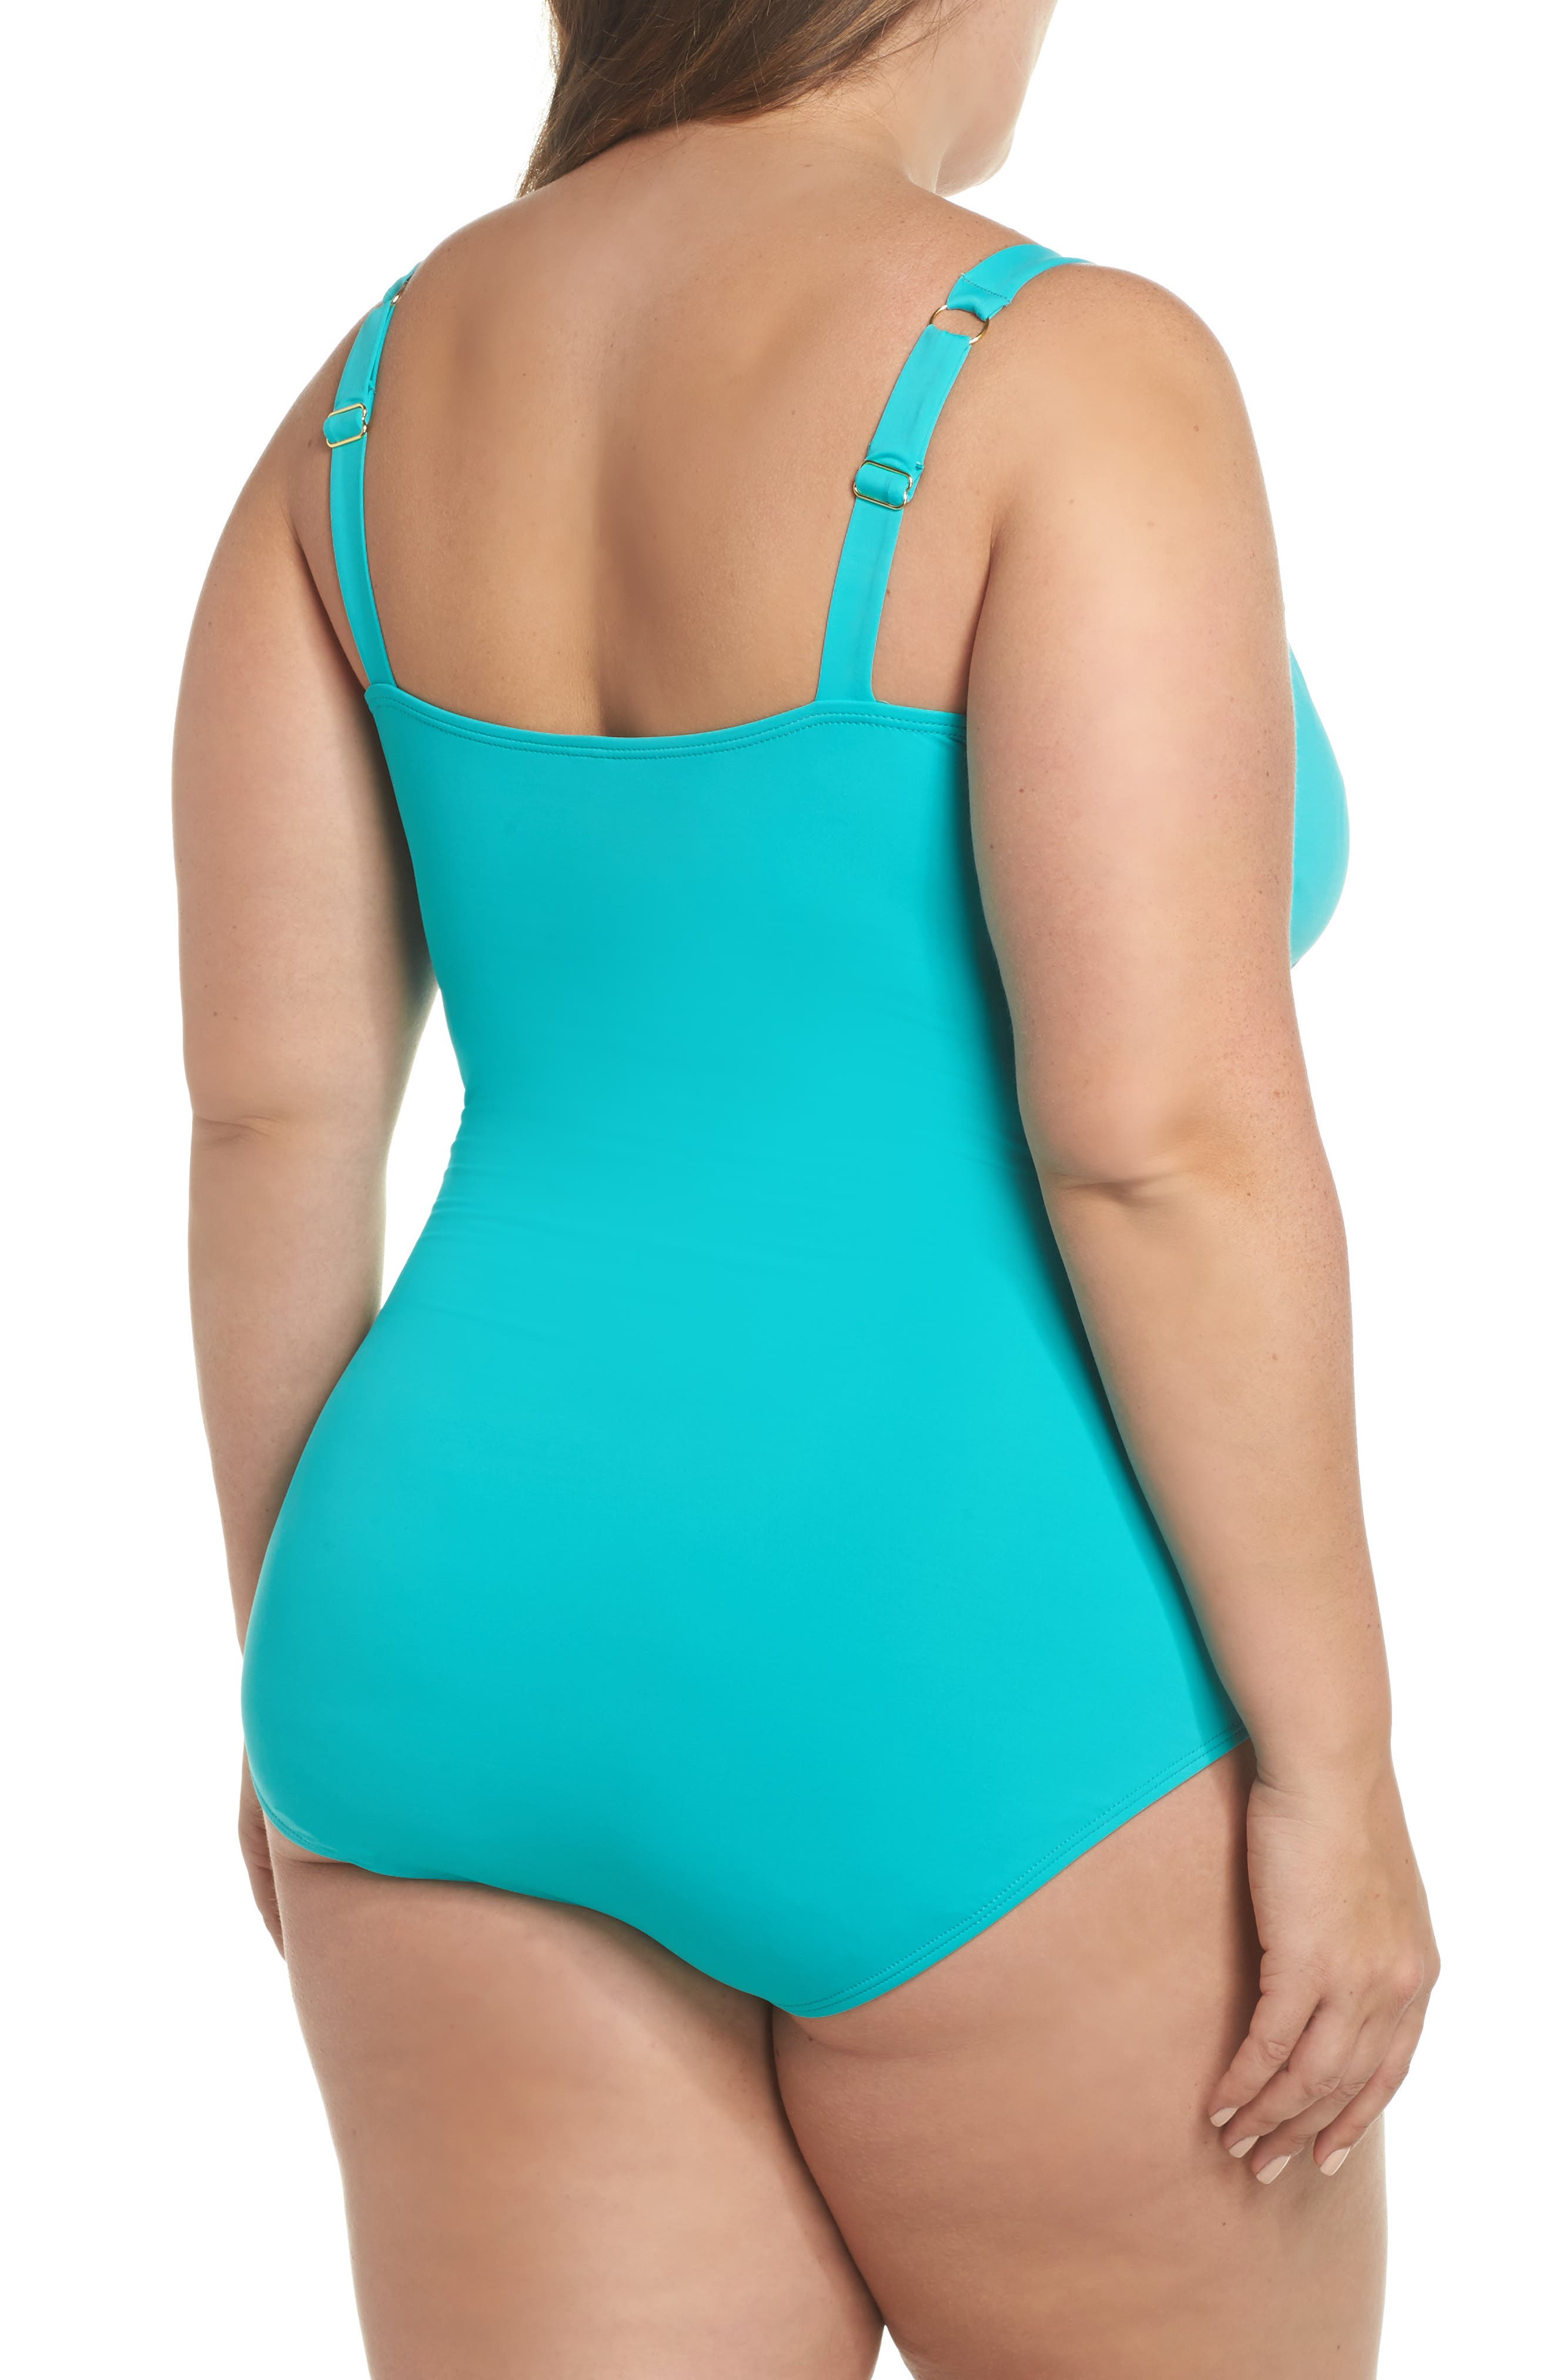 Pearl One-Piece Swimsuit,                             Alternate thumbnail 2, color,                             Ming Jade